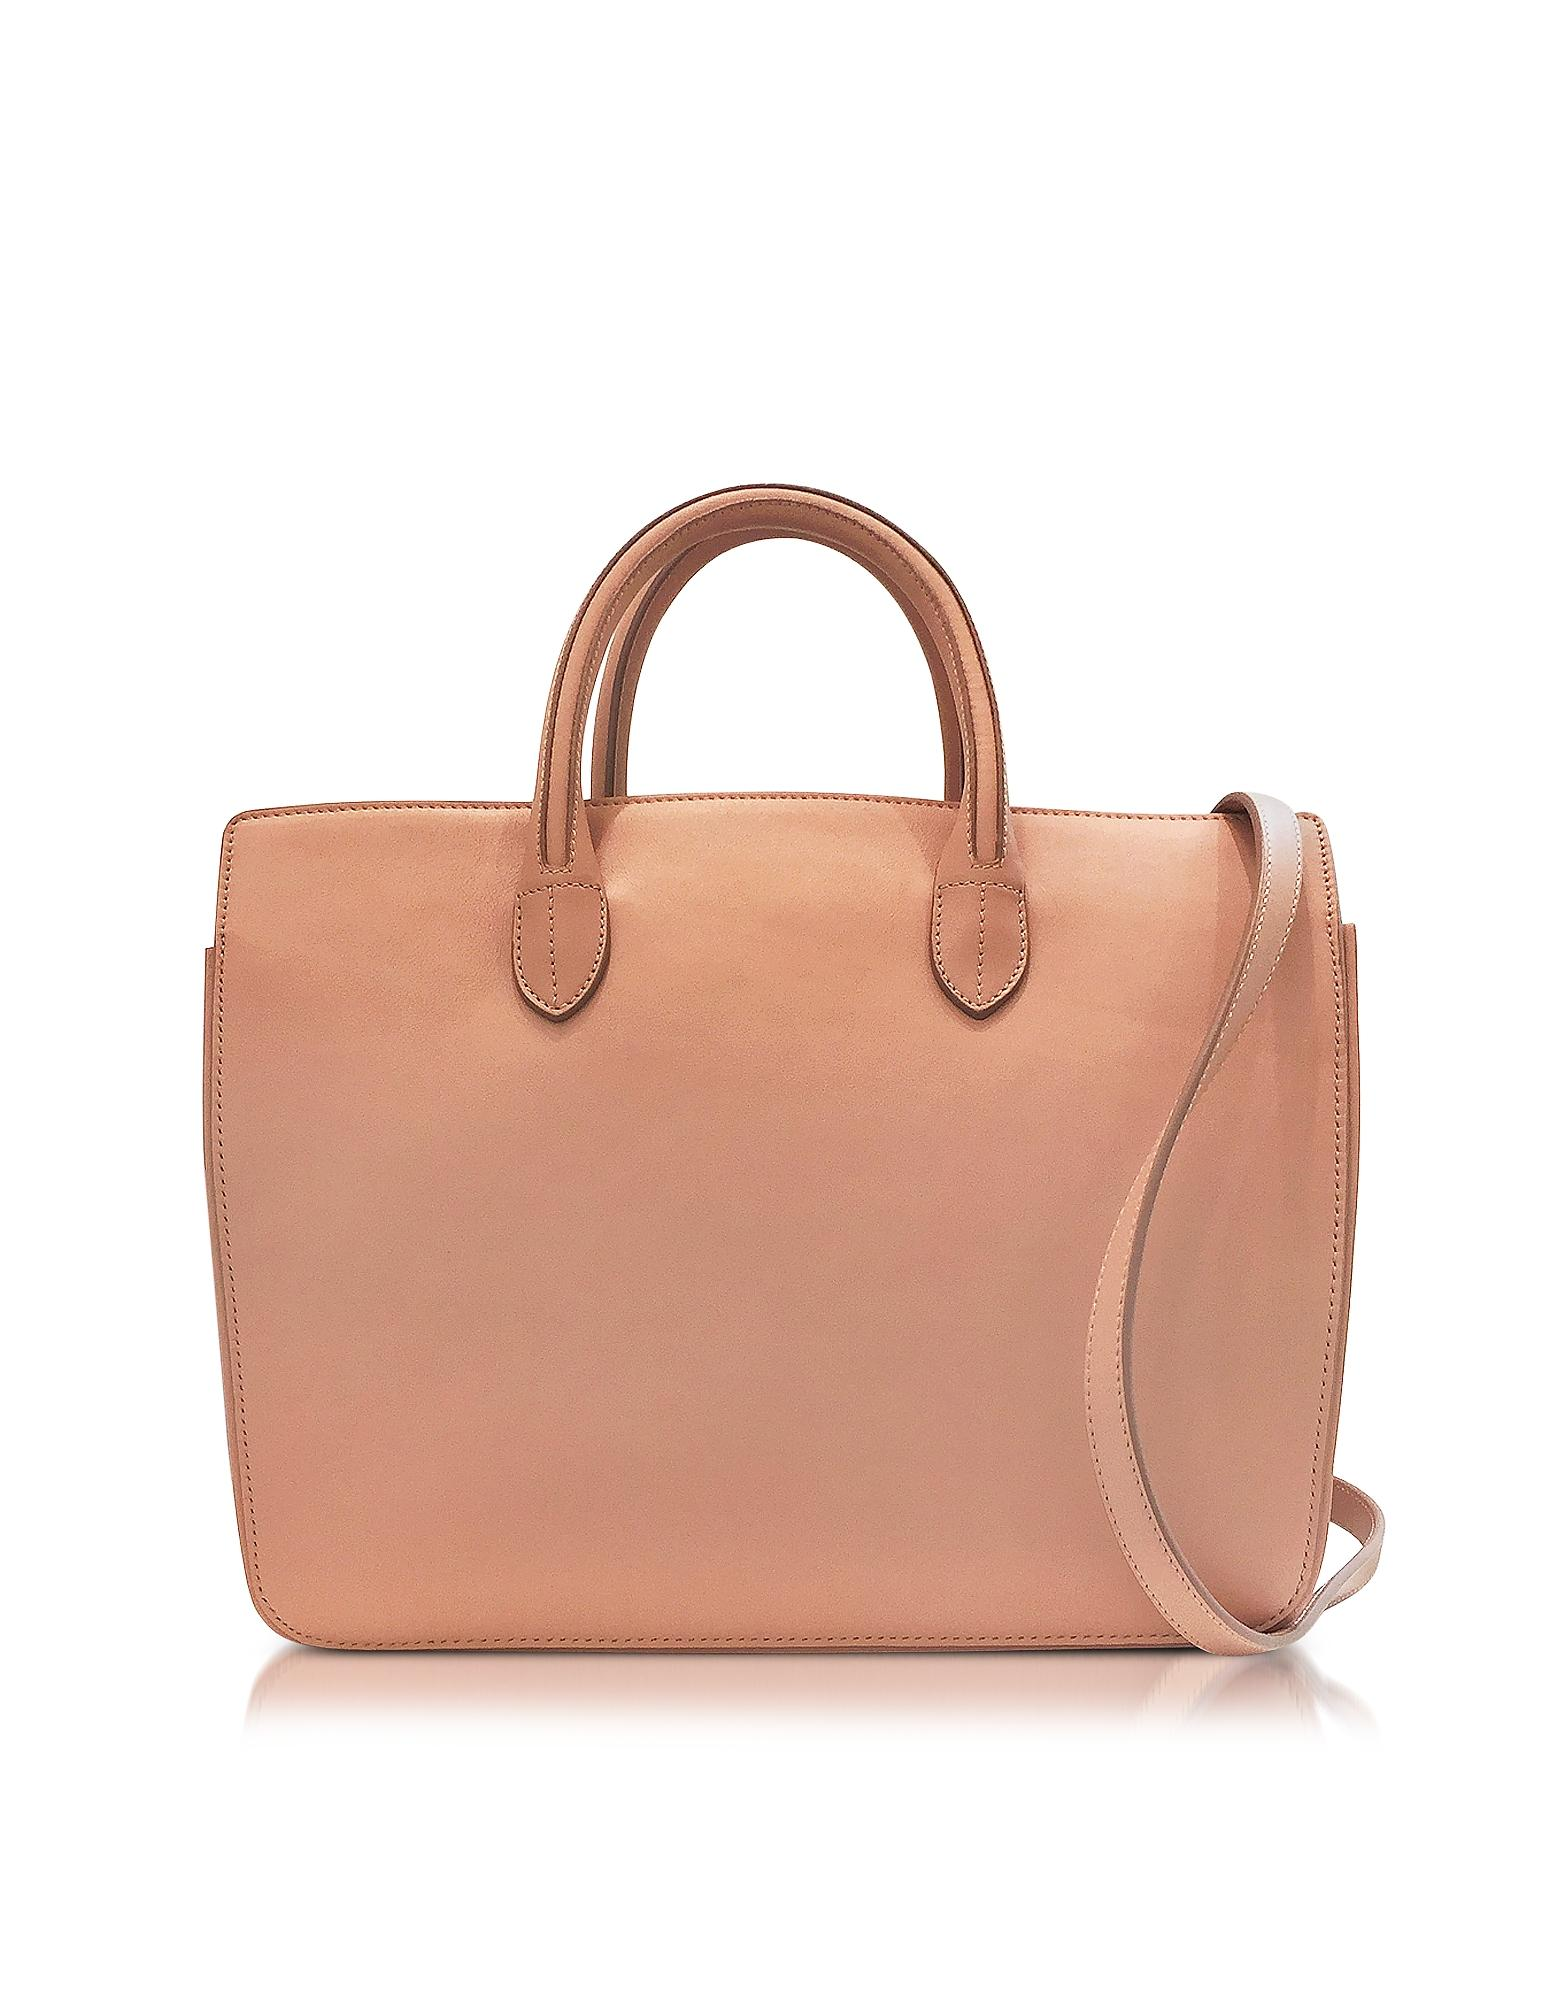 Discover luxury designer leather handbags in stylish prints and textures at Brahmin. Stock up on quality leather accessories, including wallets for both men & women, travel essentials, and chic accessories. Shop our collection of versatile leather goods here!